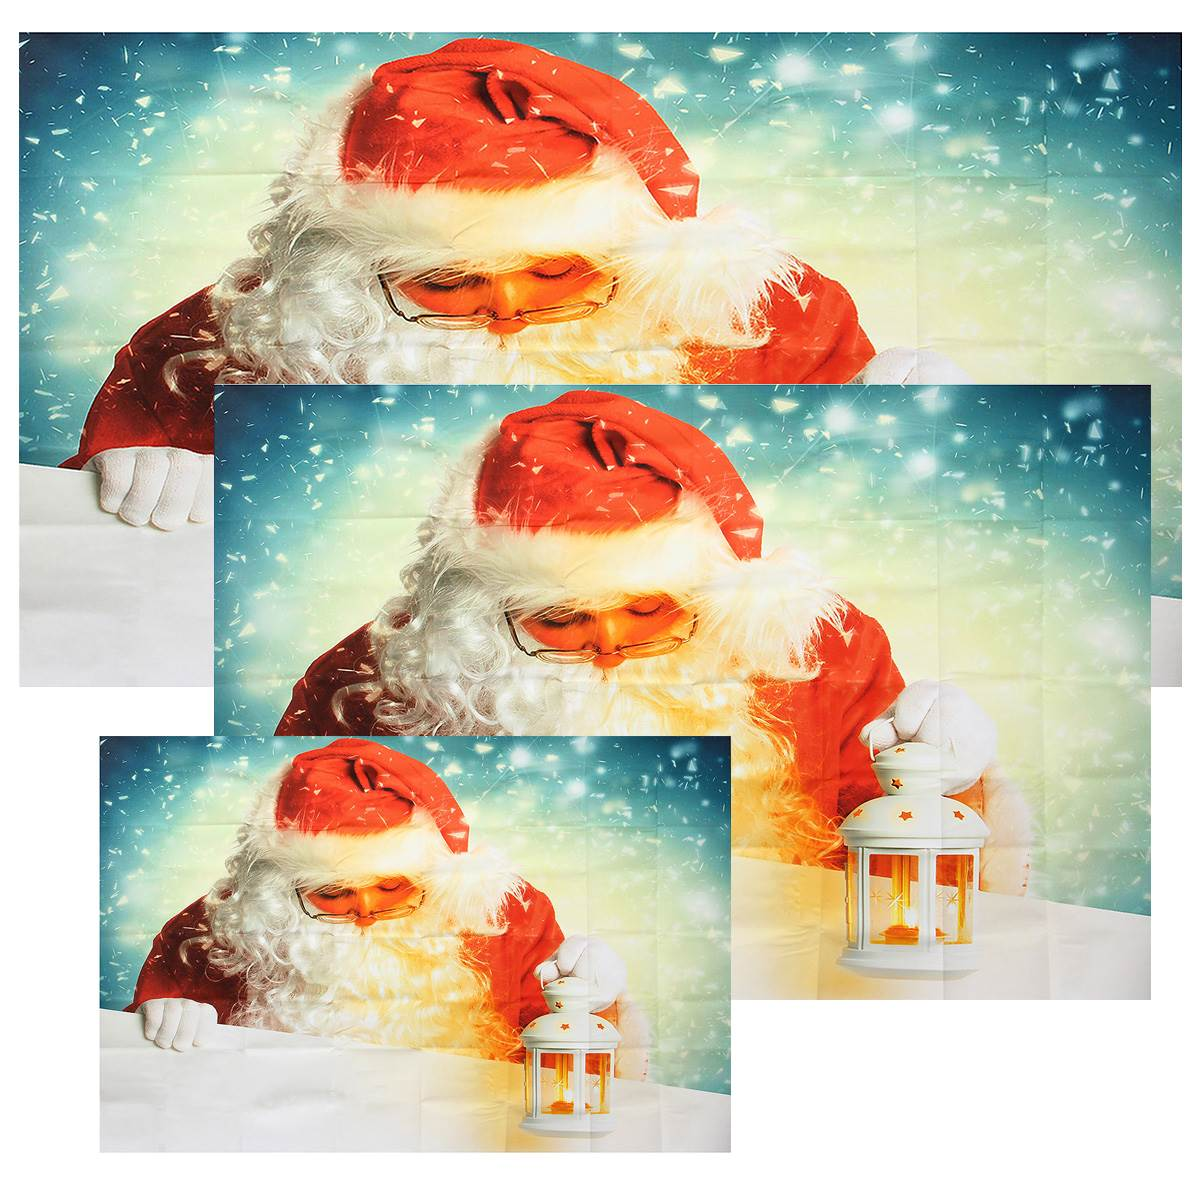 Blue Wall Photo Background Art Fabric Cloth Santa Claus Photography Backdrop Merry Christmas Background For Studio